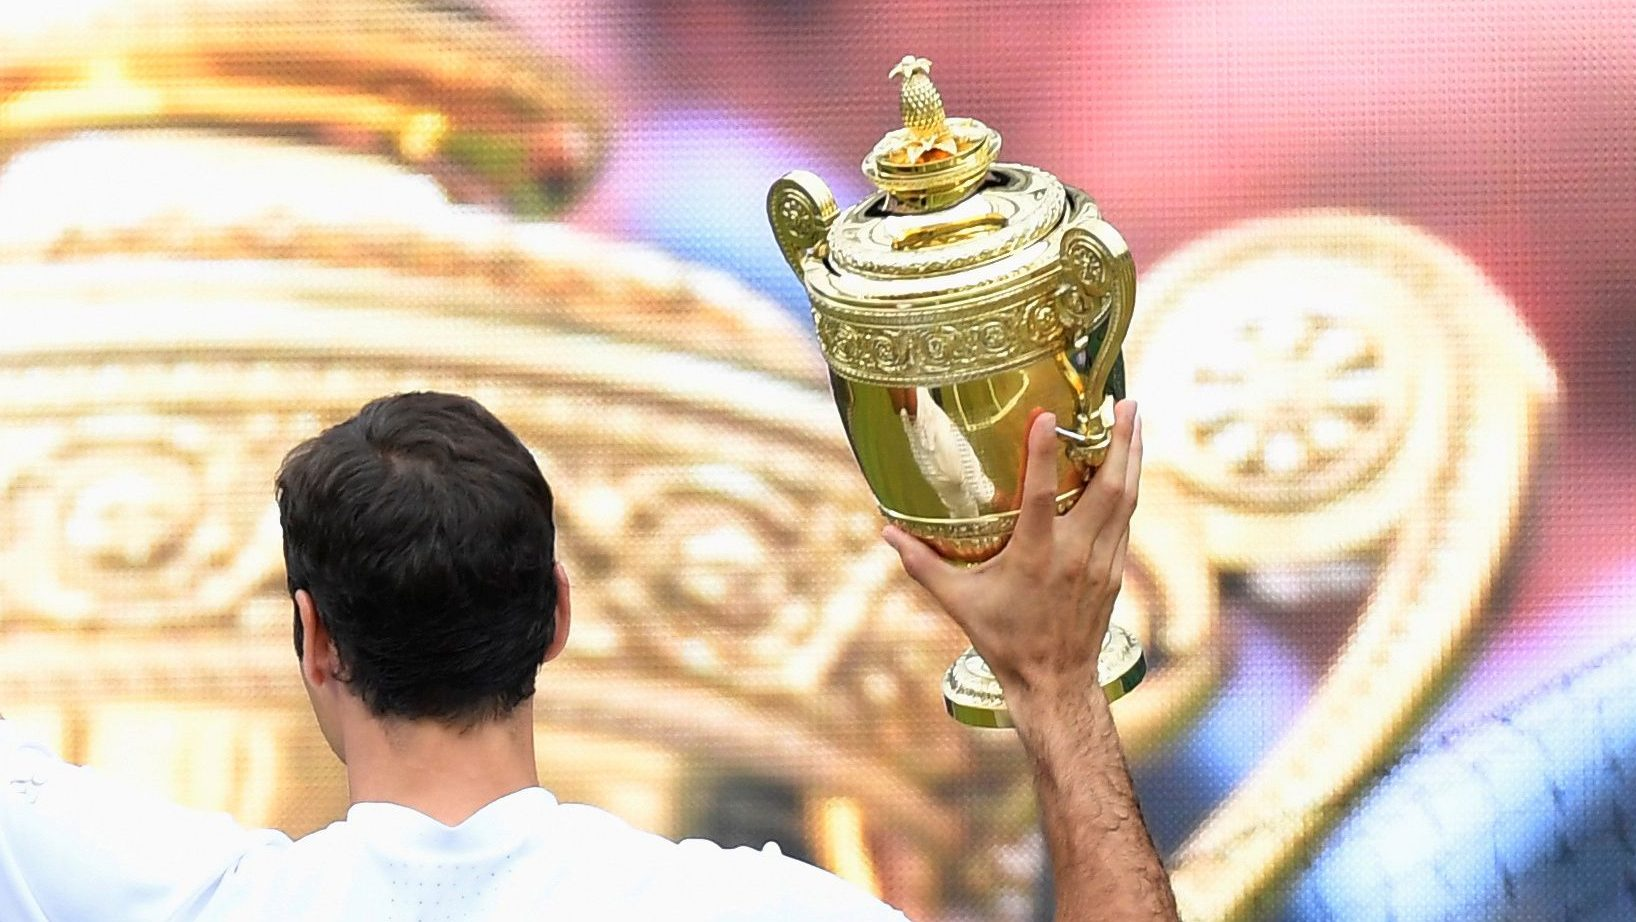 The World Cup trophy is the most disappointing prize in